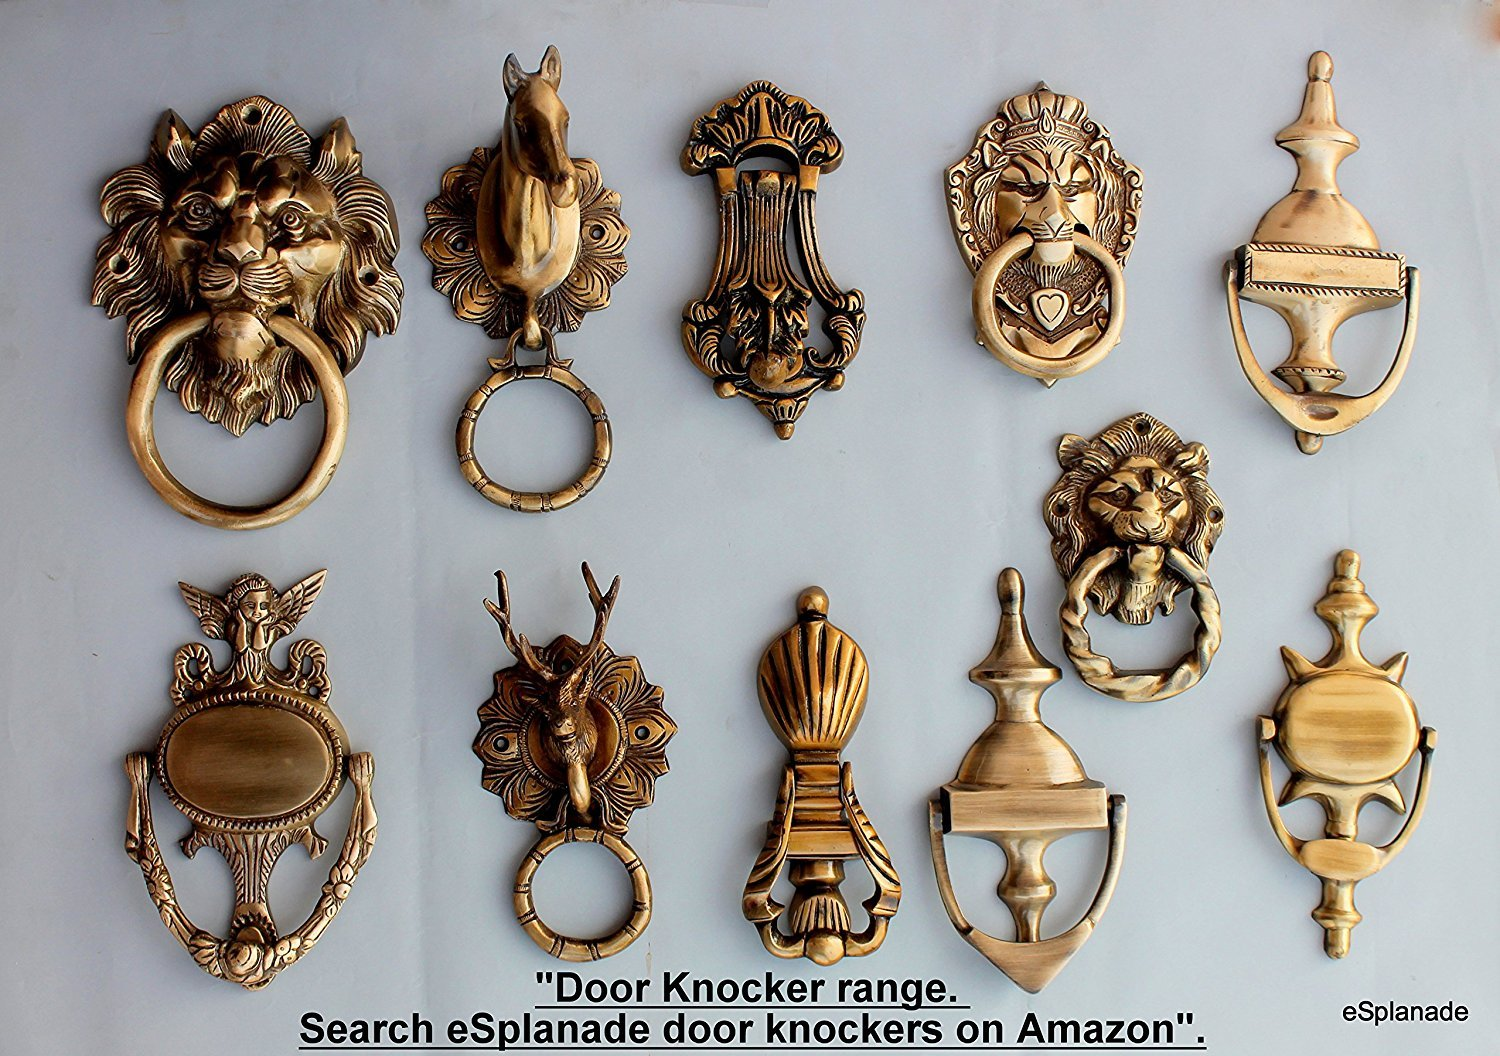 nickel front lions knockers head s aged door knocker furniture lion